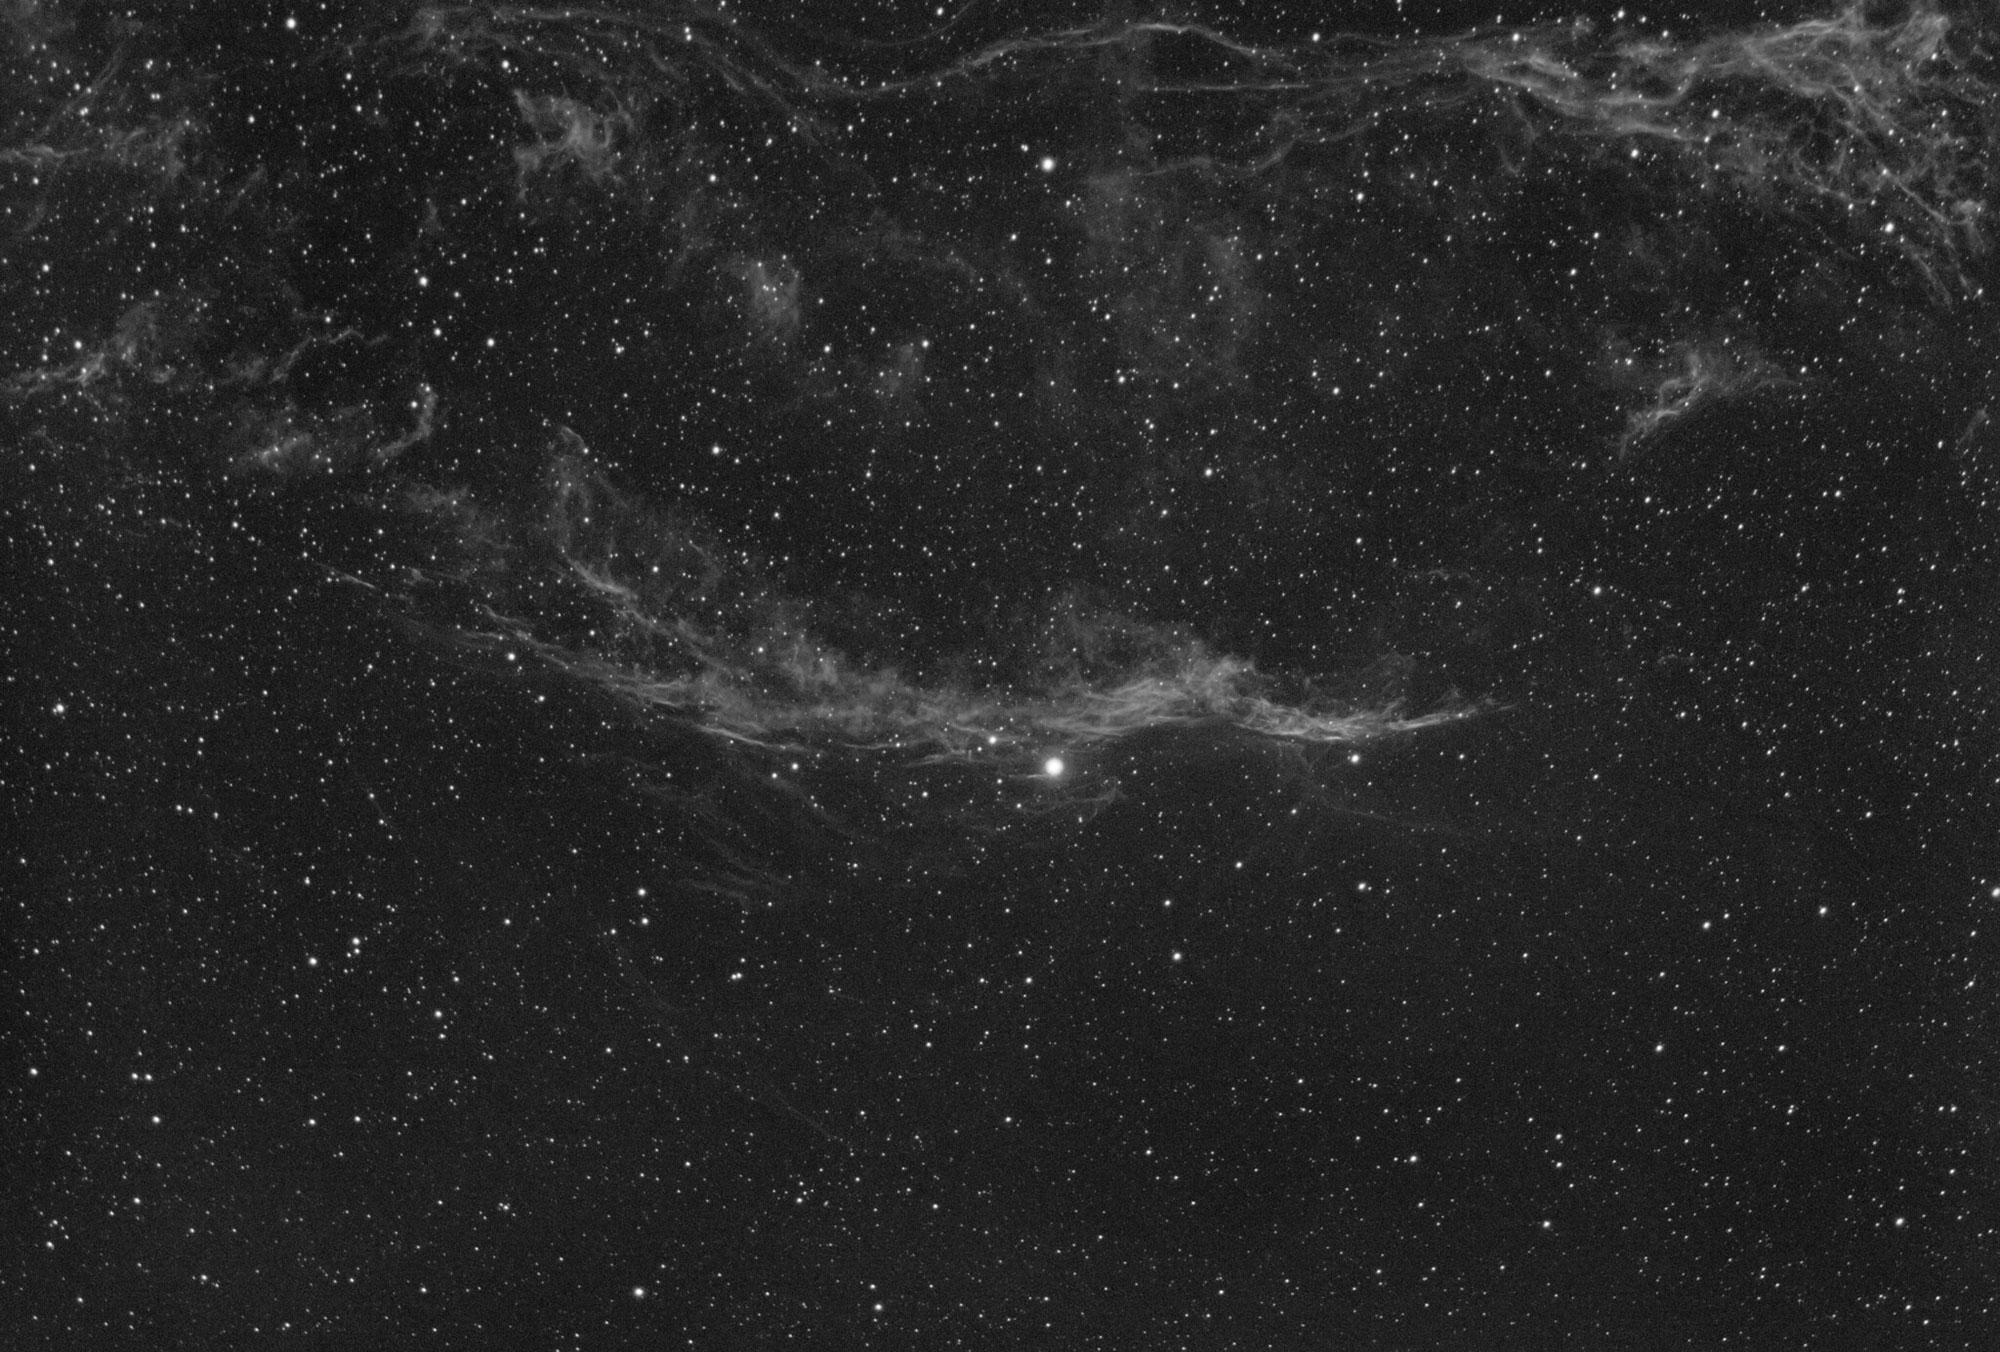 The Western Veil Nebula in HA captured with a William Optics GT71 telescope and ASI183MM camera